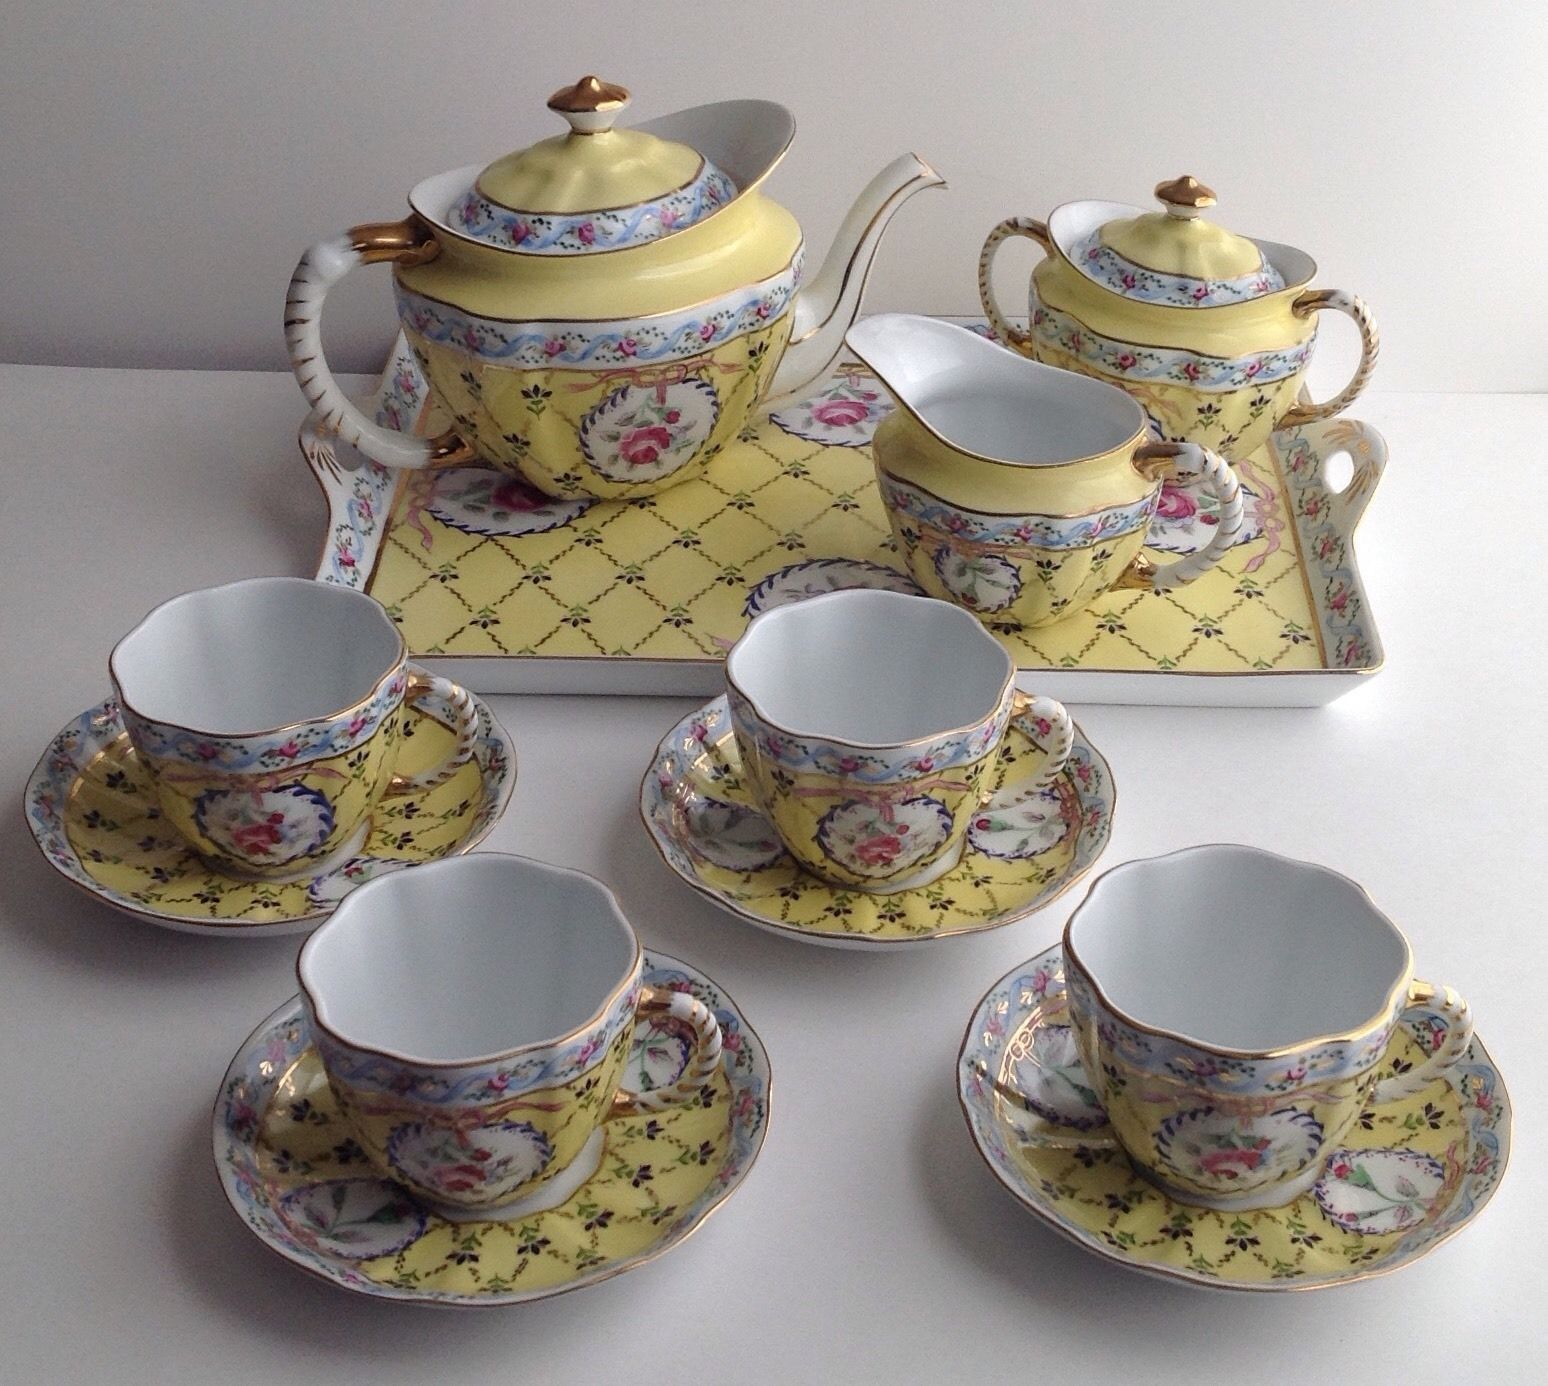 royal danube adeline tea set teapot 4 cups saucers cream sugar bowls tray teapot teas. Black Bedroom Furniture Sets. Home Design Ideas